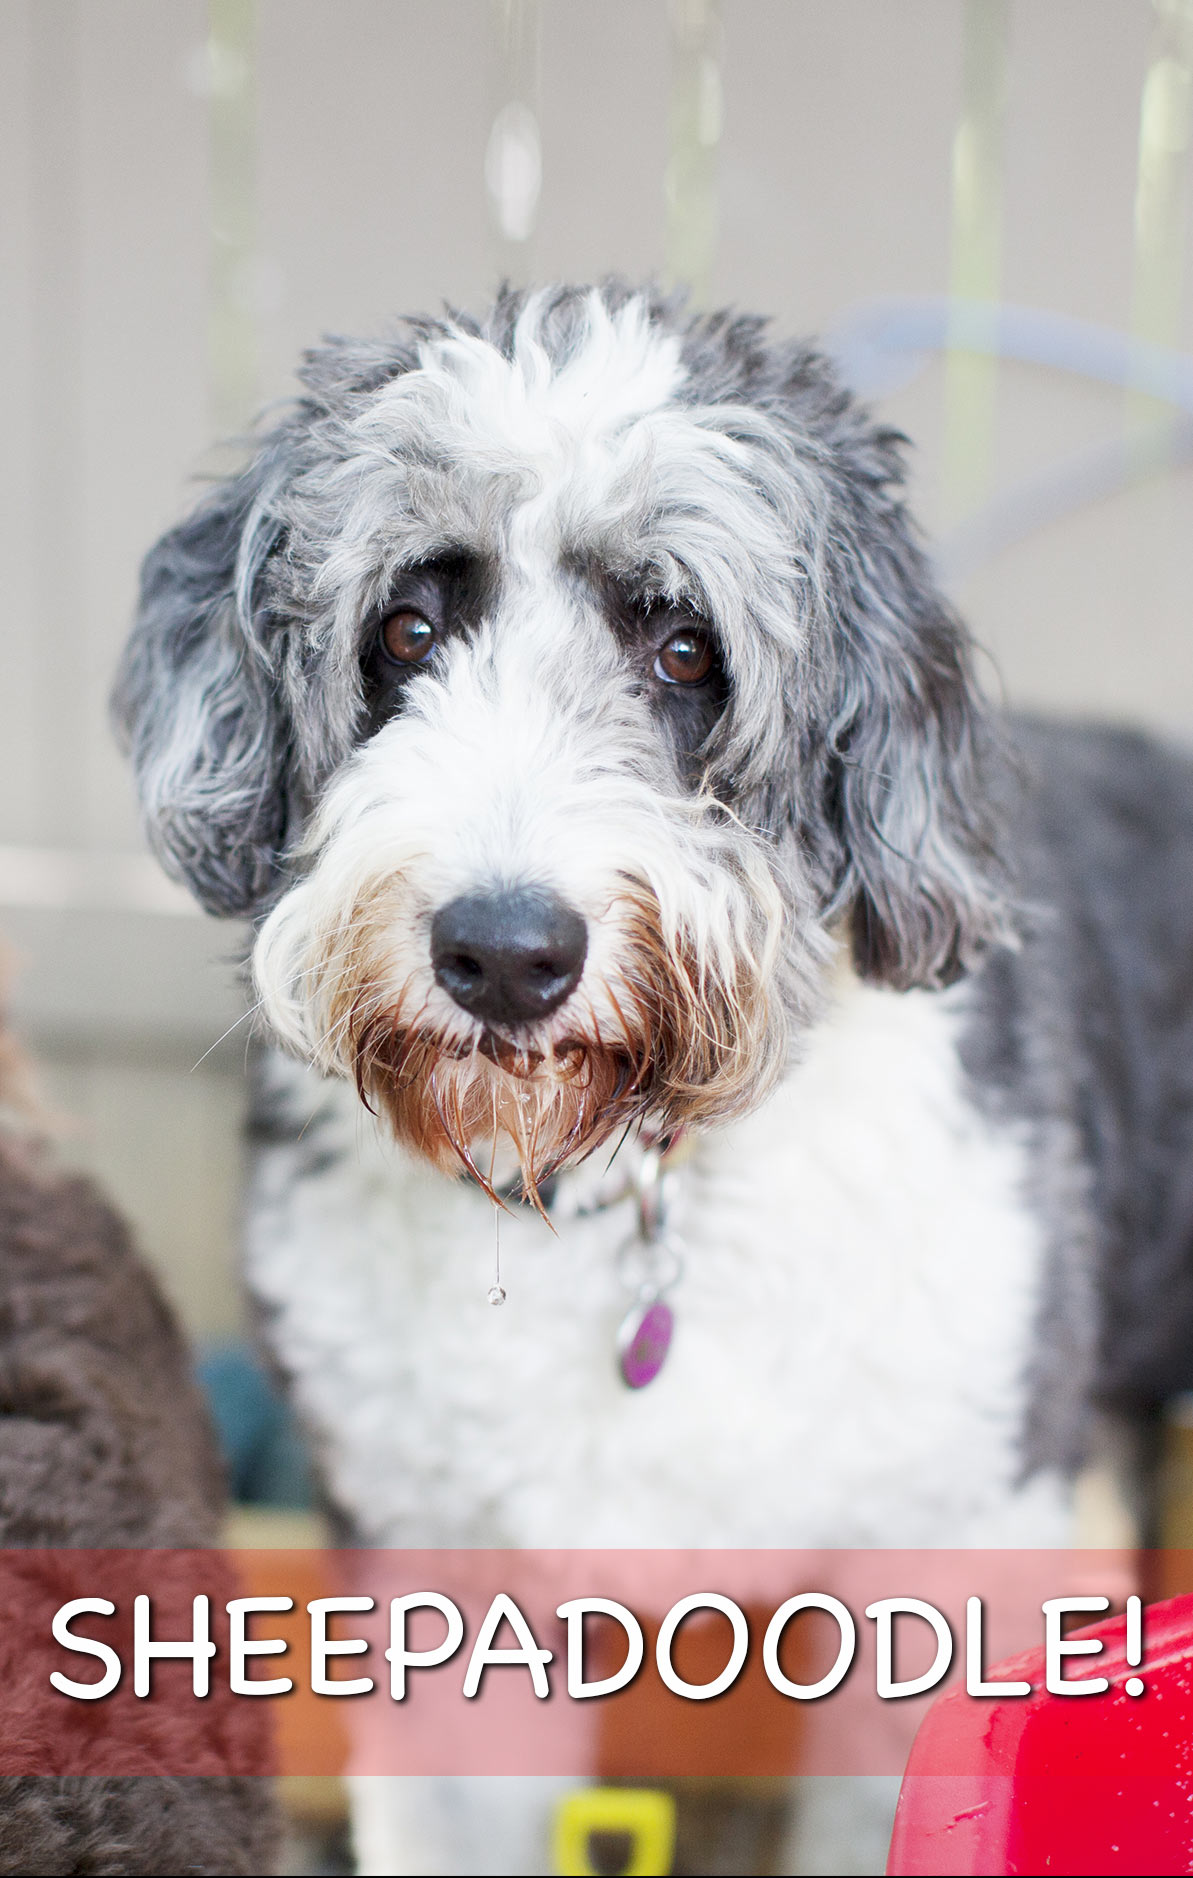 sheepadoodle the result of mixing poodles with old